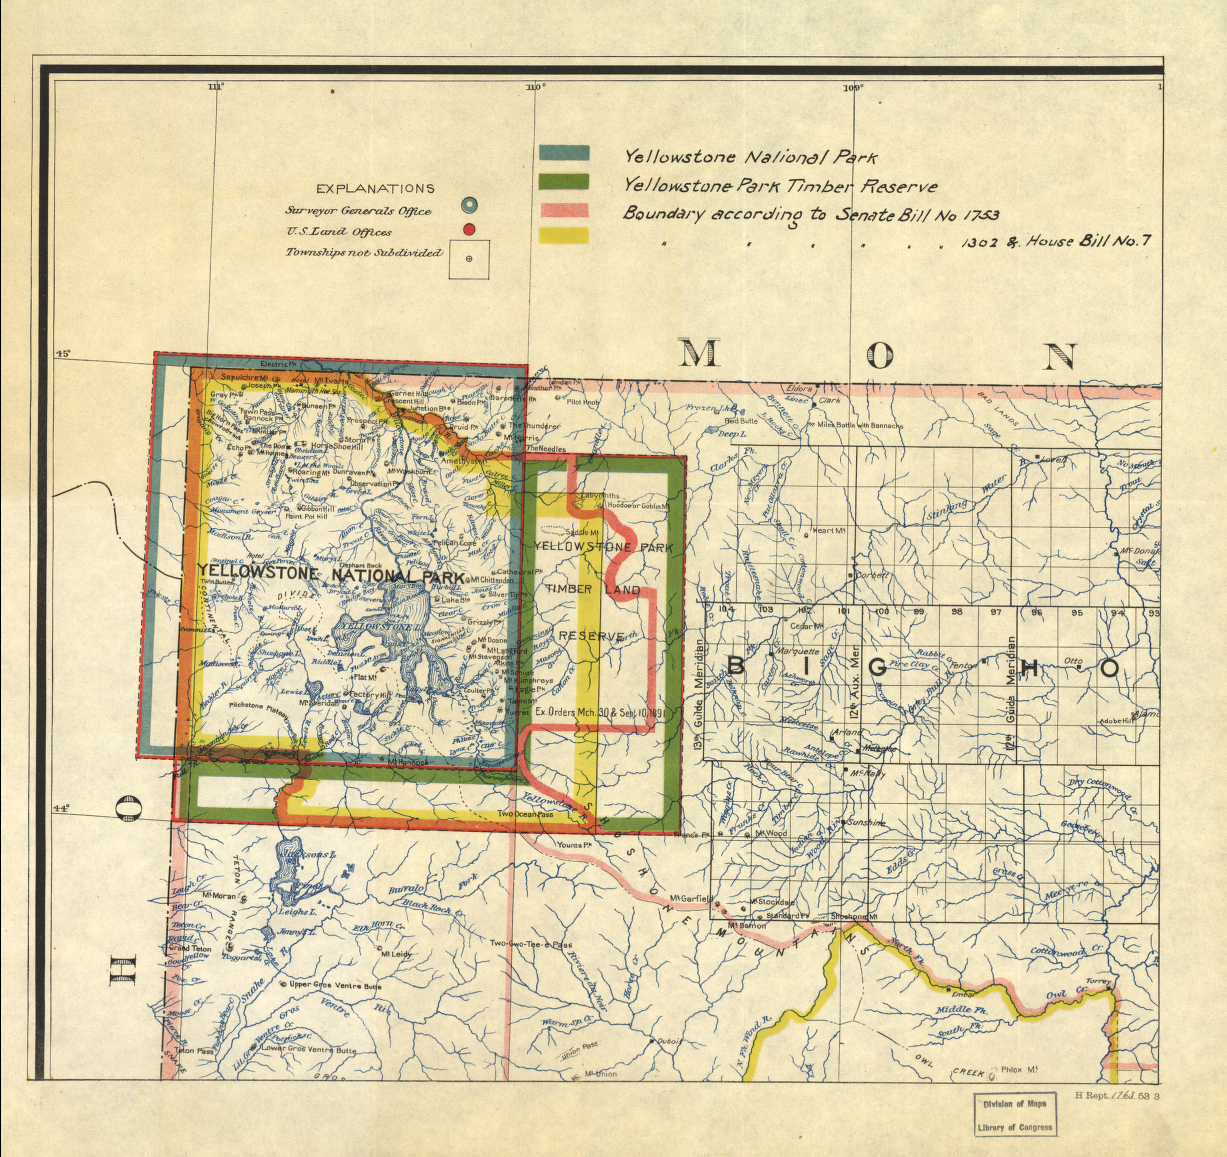 Yellowstone National Park Timber Map from the Library of Congress Collection